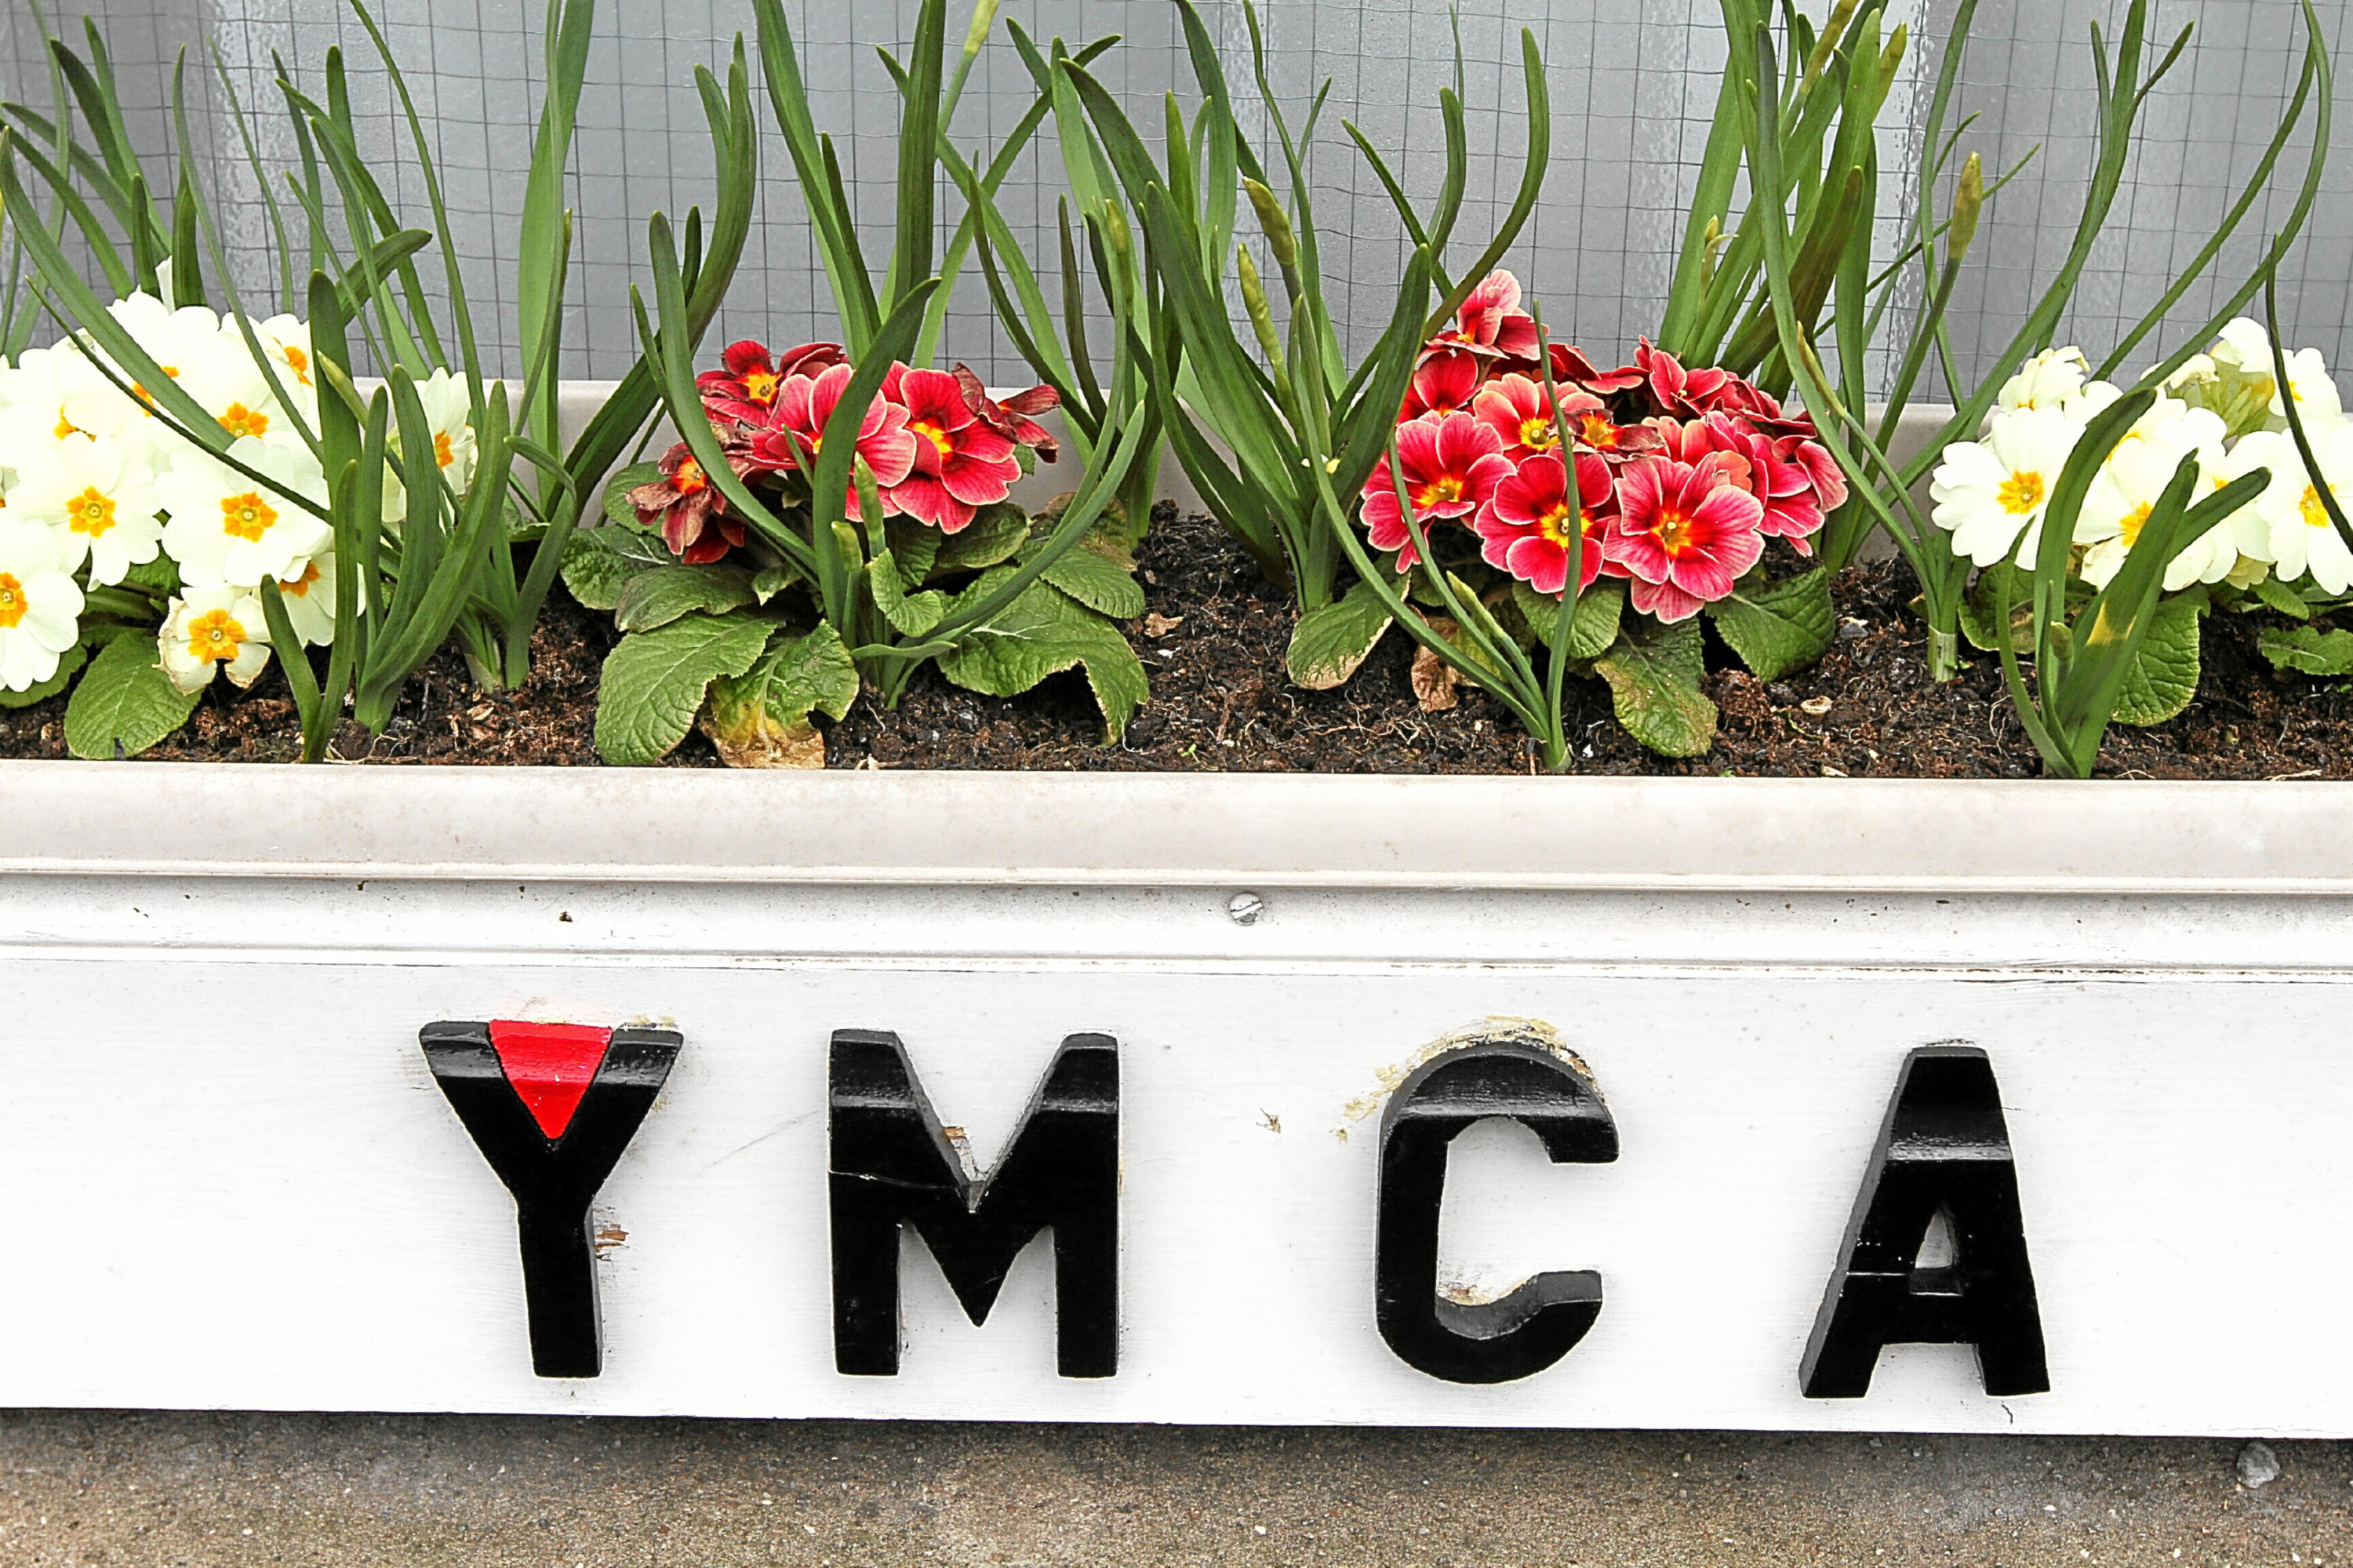 The YMCA is celebrating its 150th anniversary.